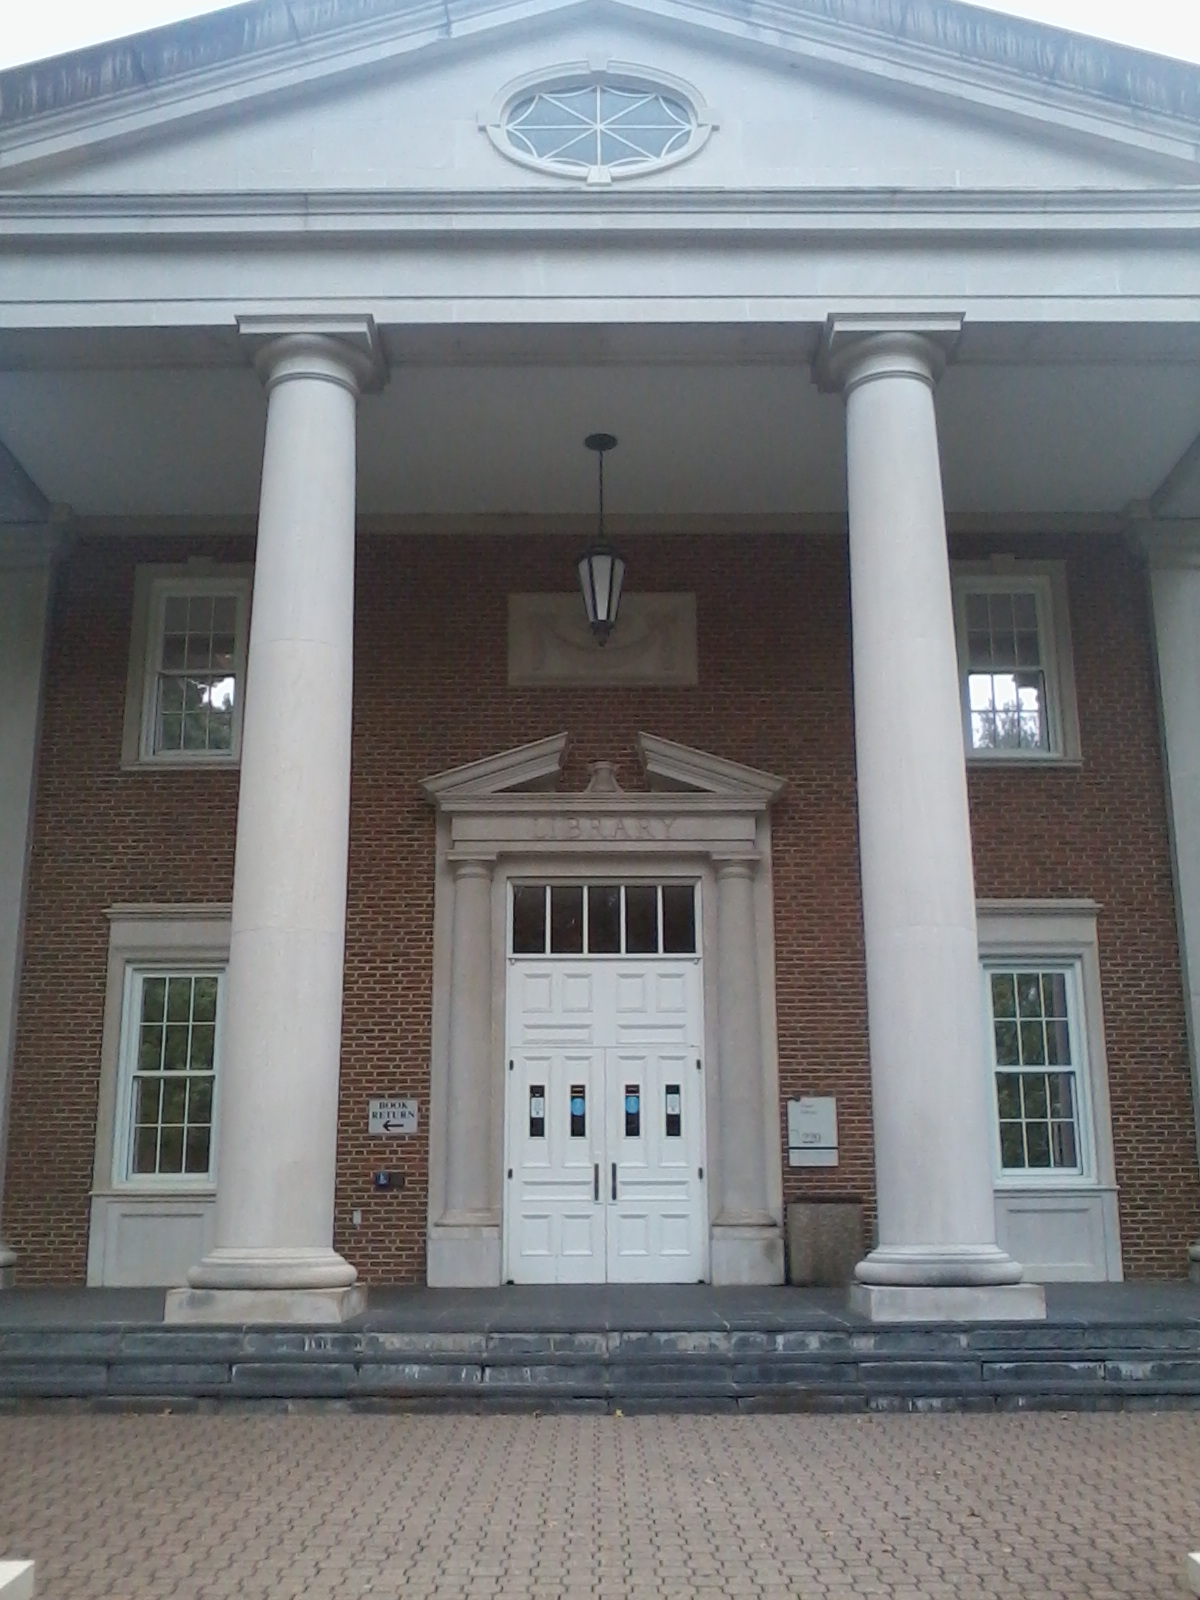 Fintel Library entrance